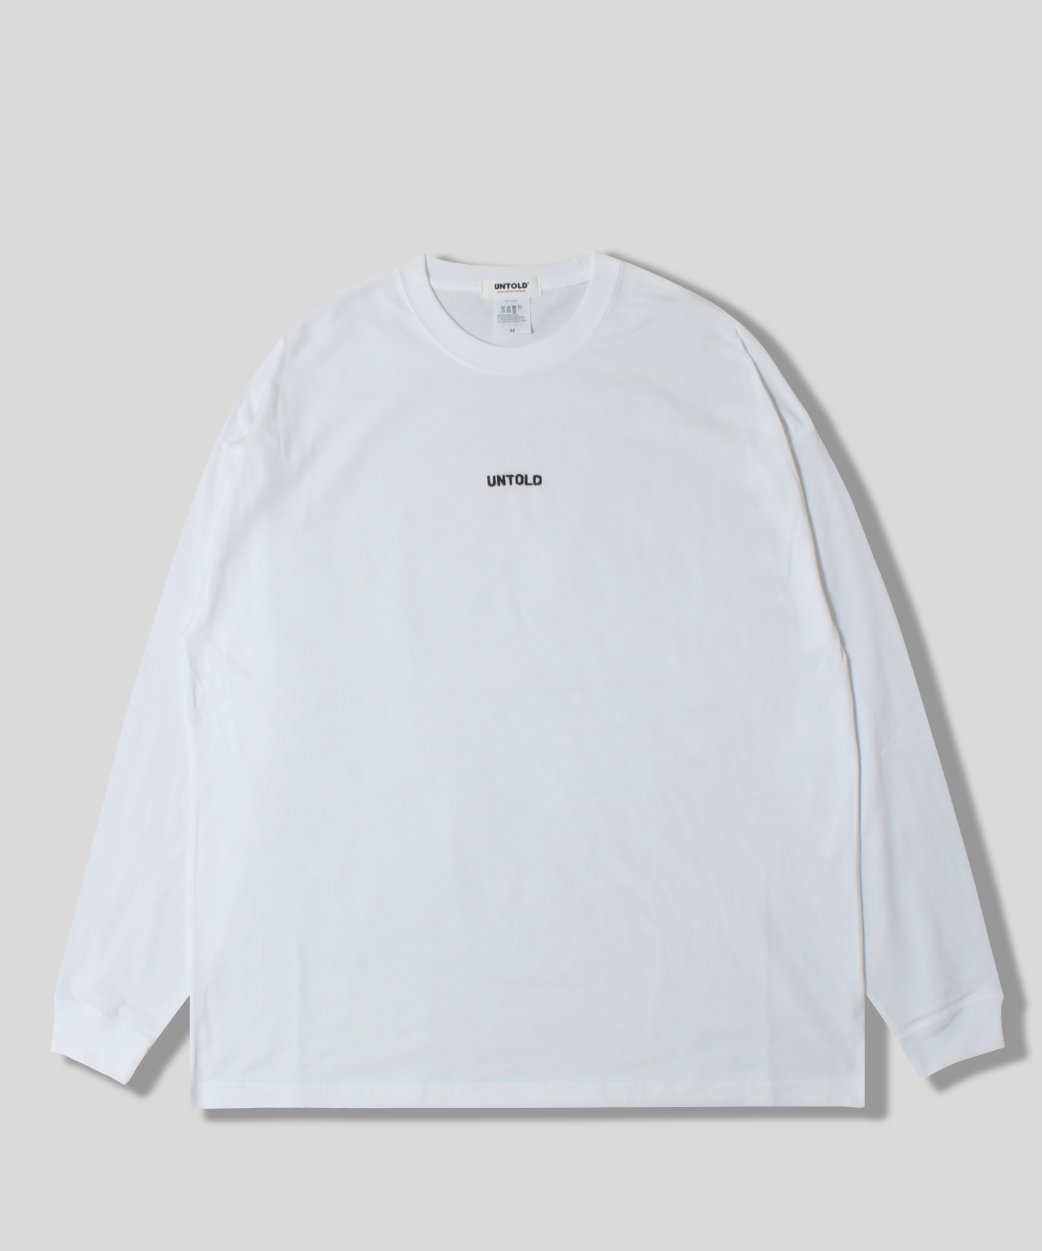 UNTOLD EMBROIDERY<br> LOGO LS TEE